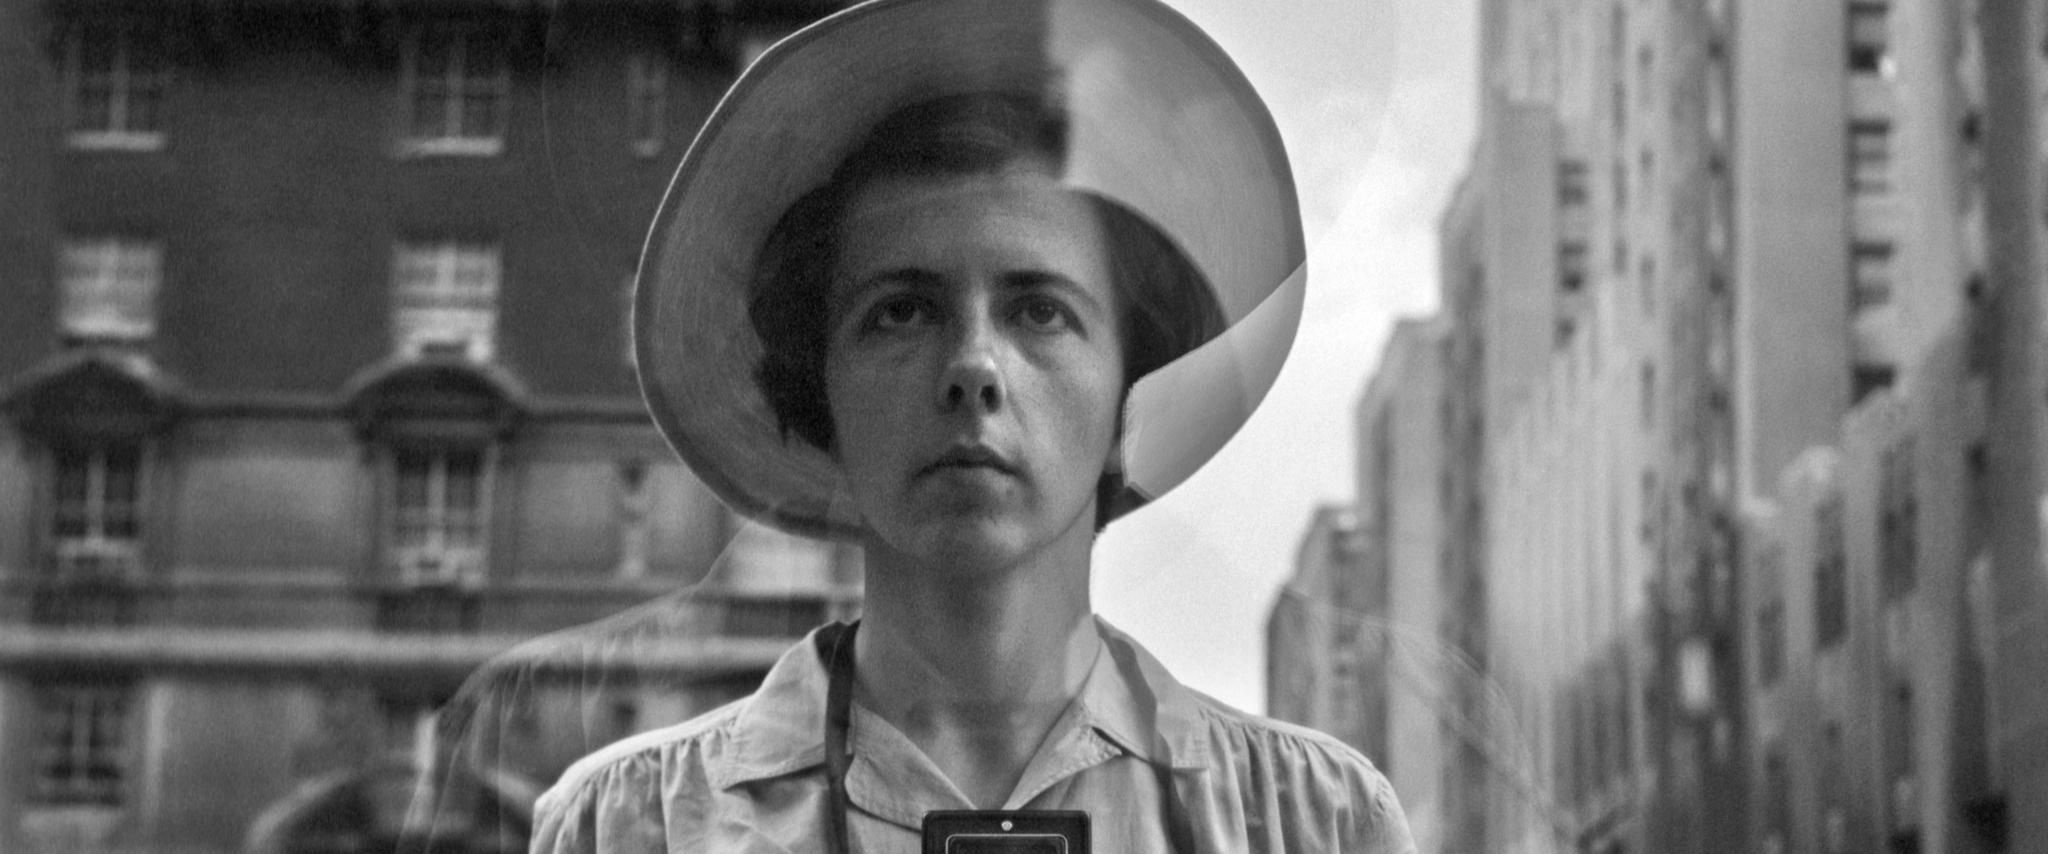 An image from Finding Vivian Maier